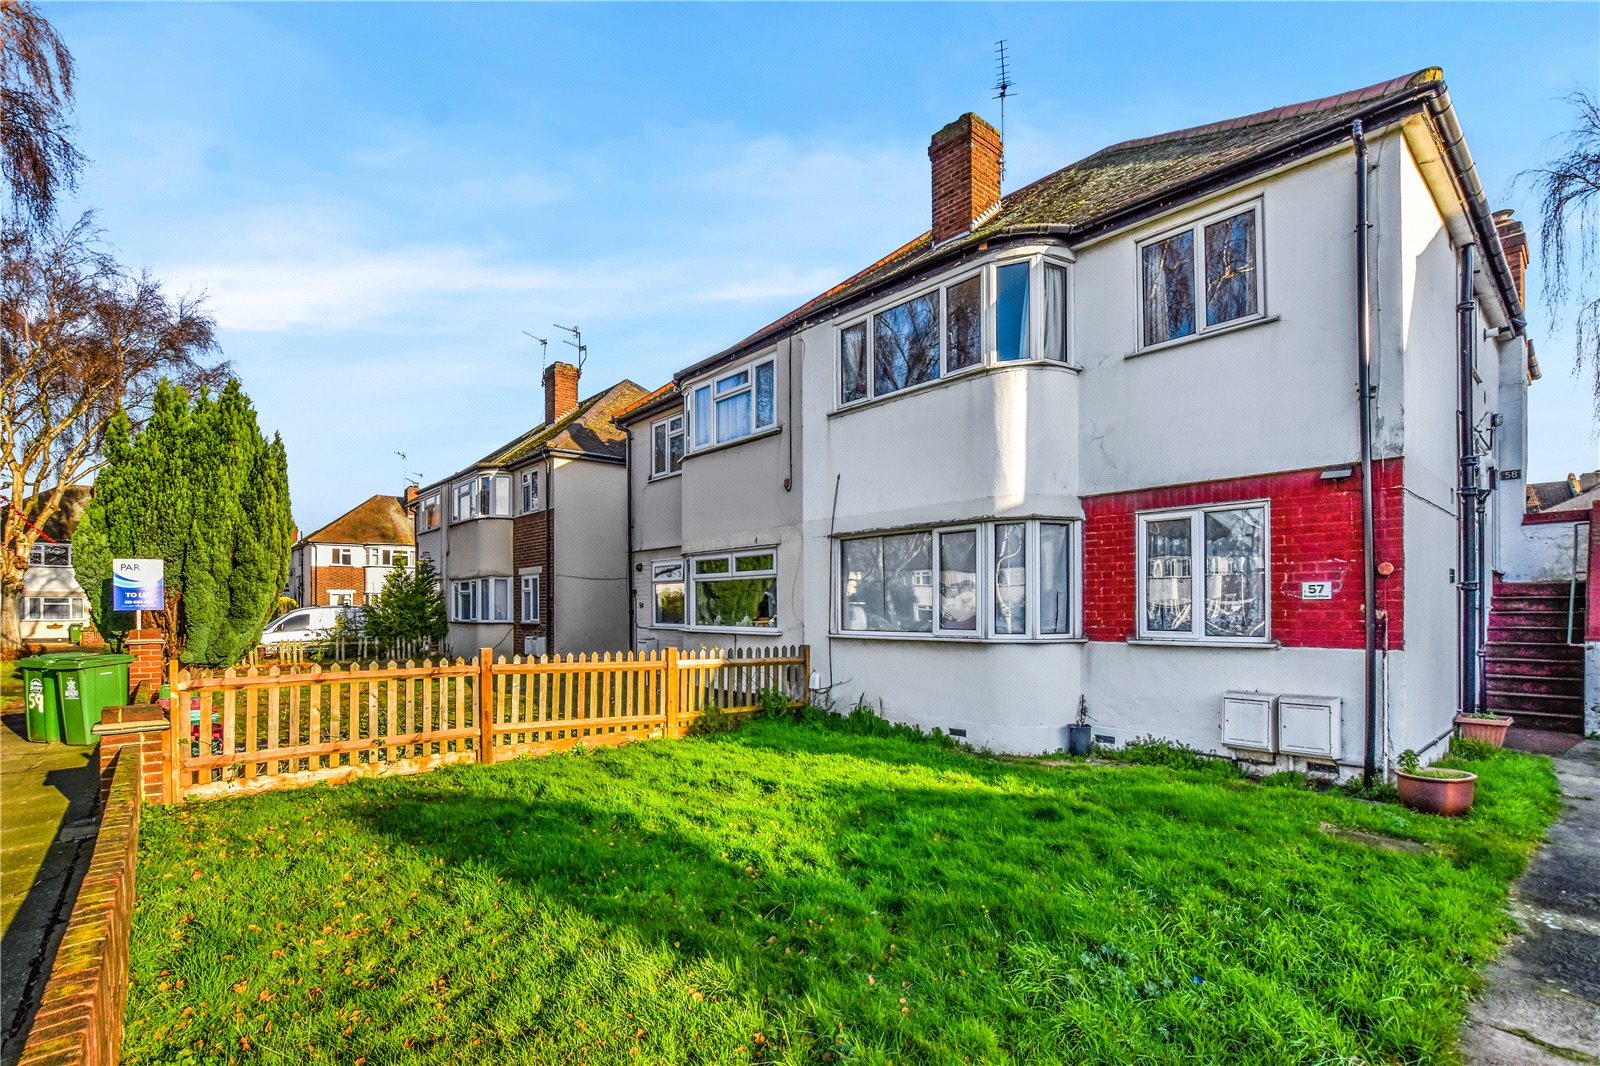 Russell Close, Bexleyheath, Kent, DA7